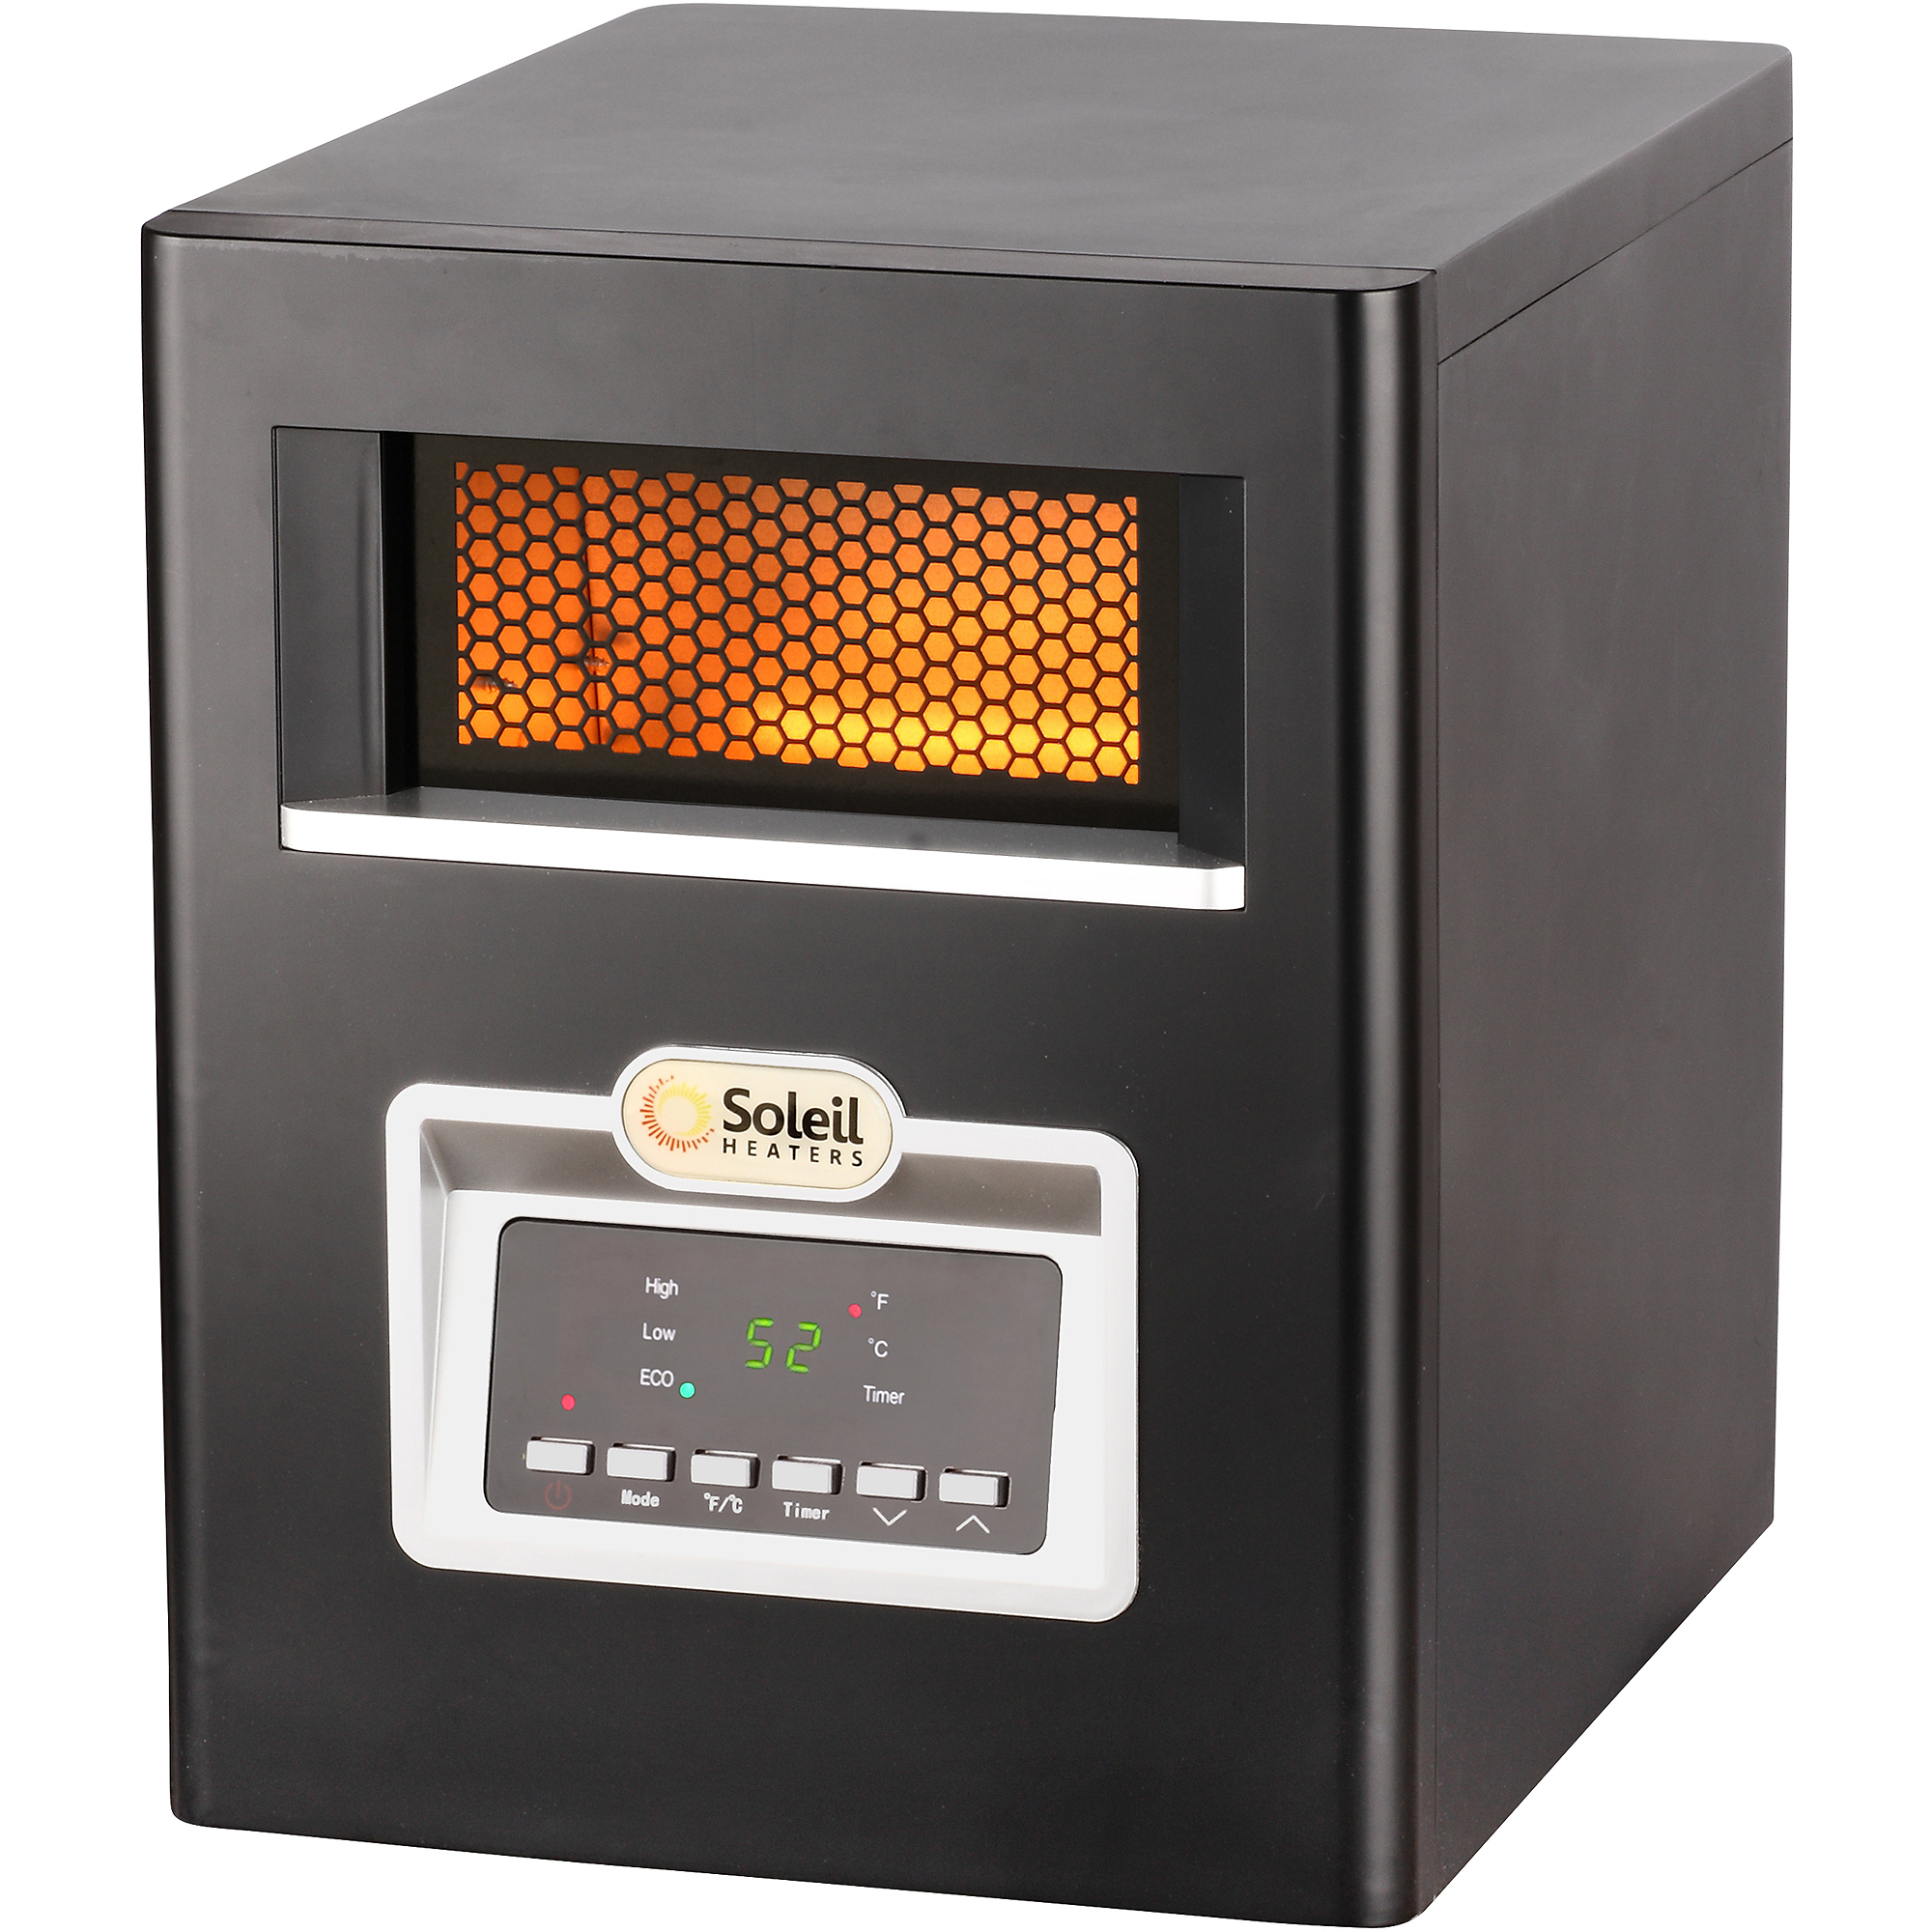 Soleil Electric Infrared Cabinet Space Heater, 1500W, PH 91F   Walmart.com